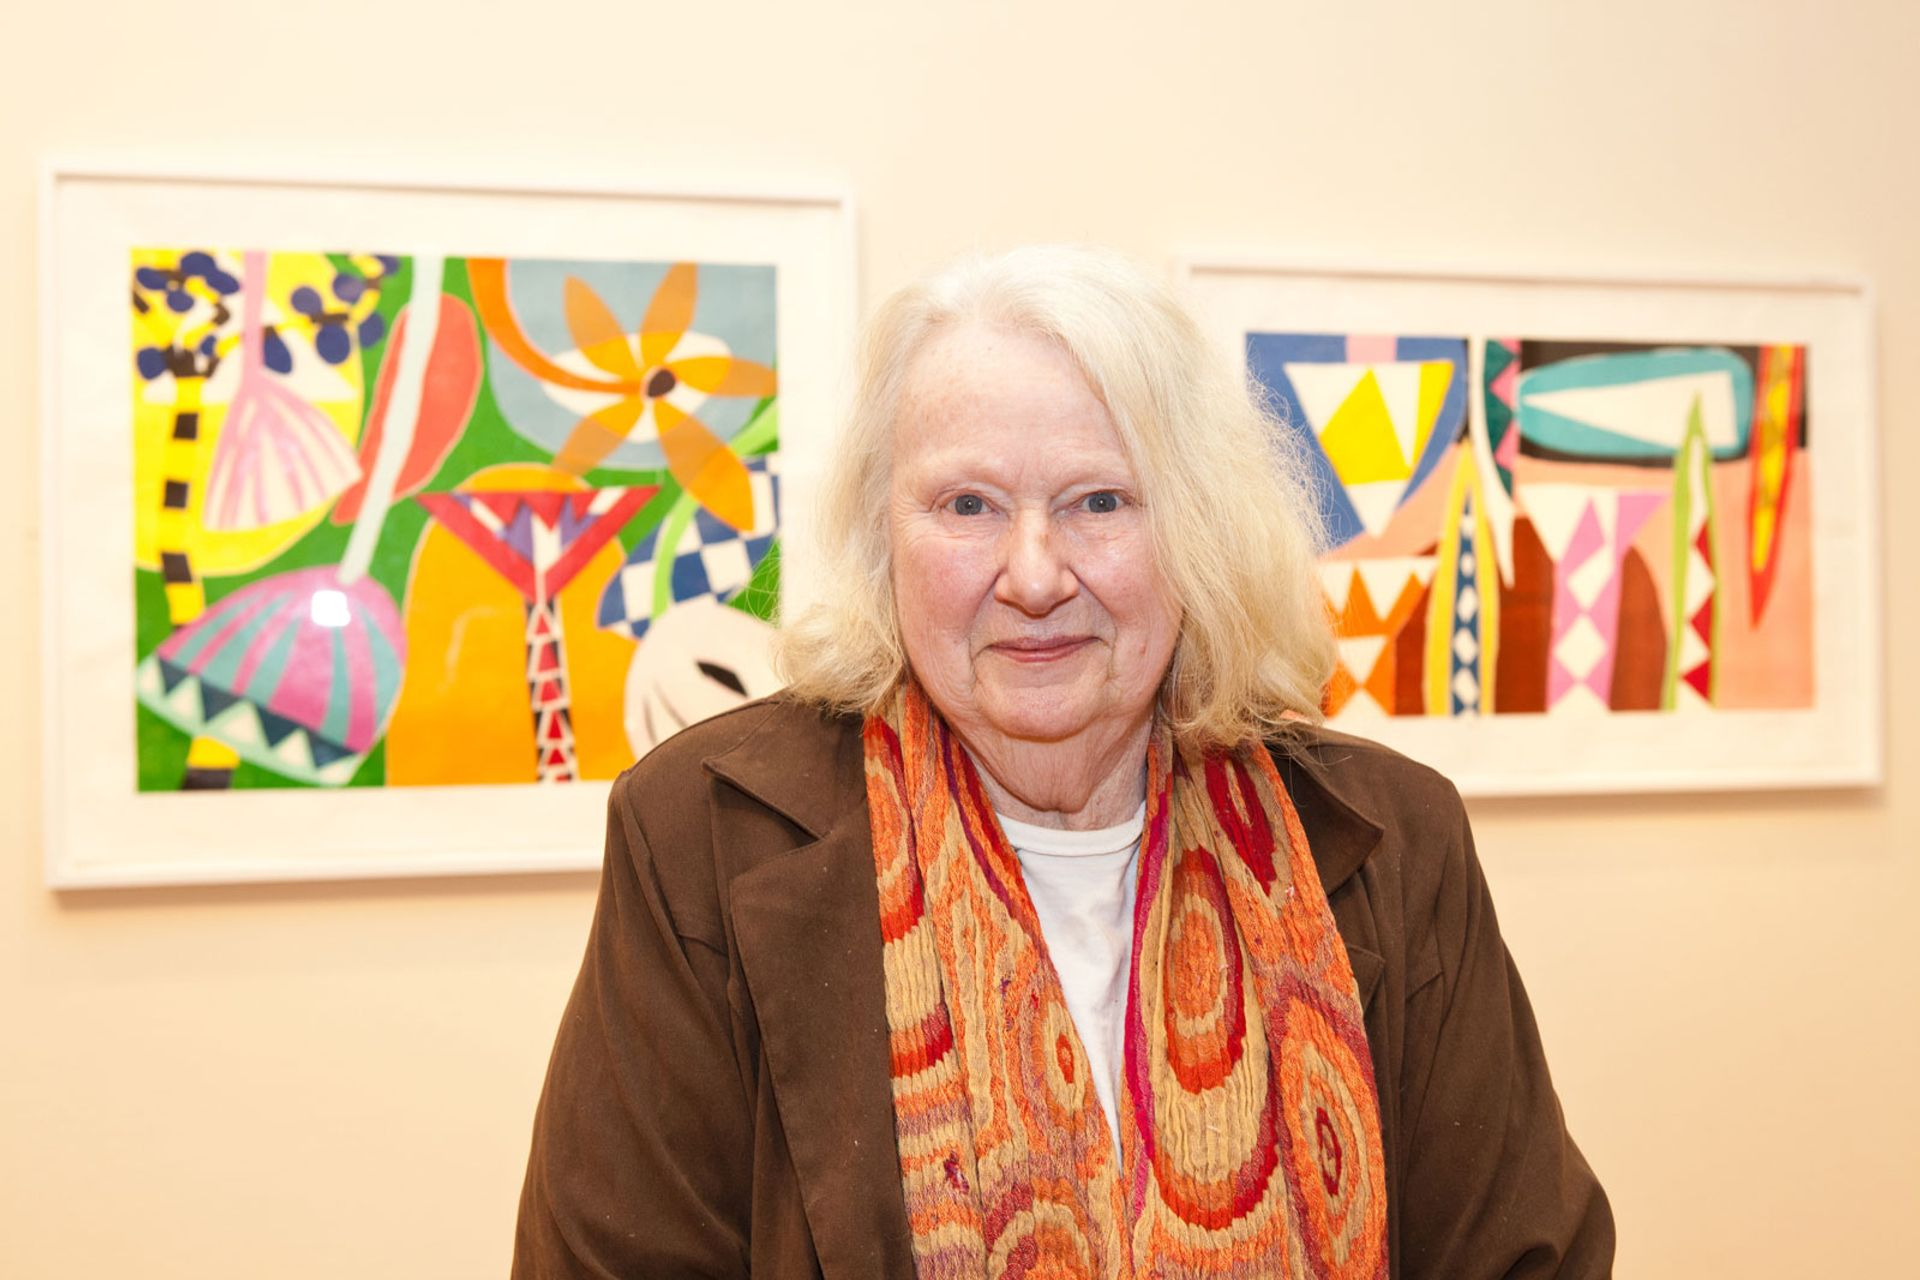 Gillian Ayres pictured in front of her prints at Victoria Art Gallery, Bath (2012) Courtesy of Alan Cristea Gallery